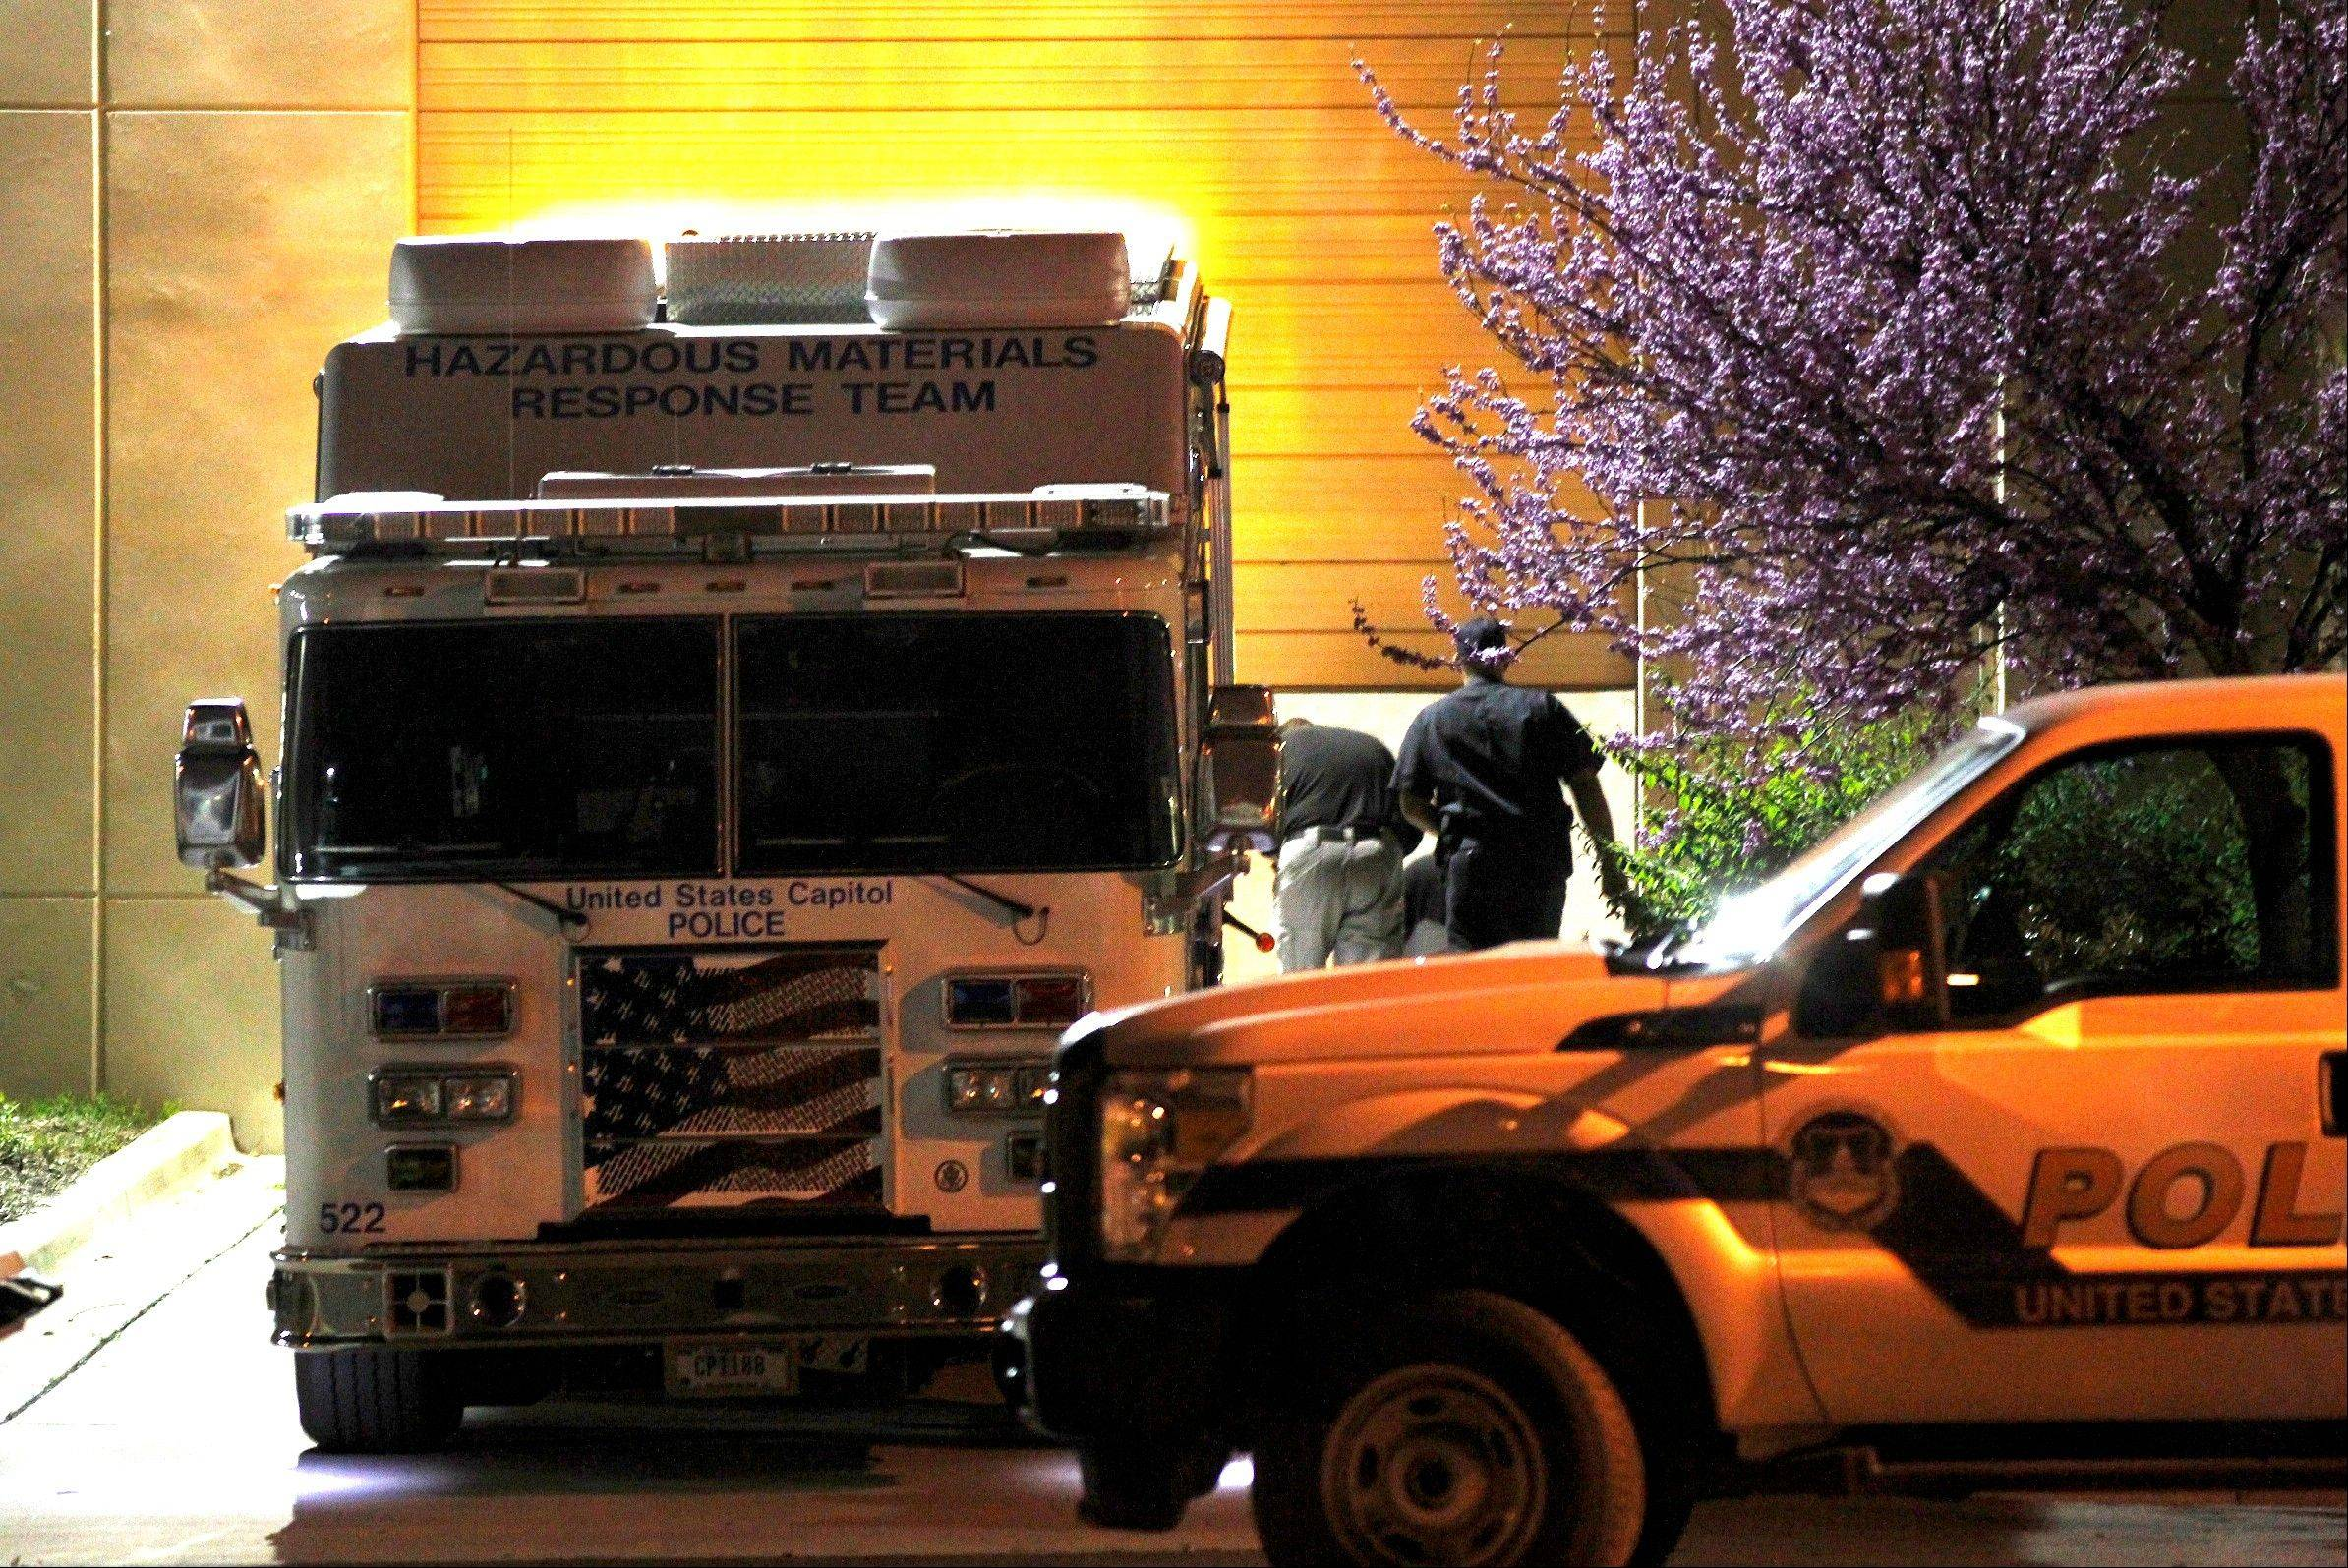 A U.S. Capitol Police hazmat vehicle is parked at a mail processing facility for Congressional mail in Prince George's County where a letter addressed to Sen. Roger Wicker, R-Miss., tested positive for ricin, Tuesday, April 16, 2013, in Hyattsville, Md.